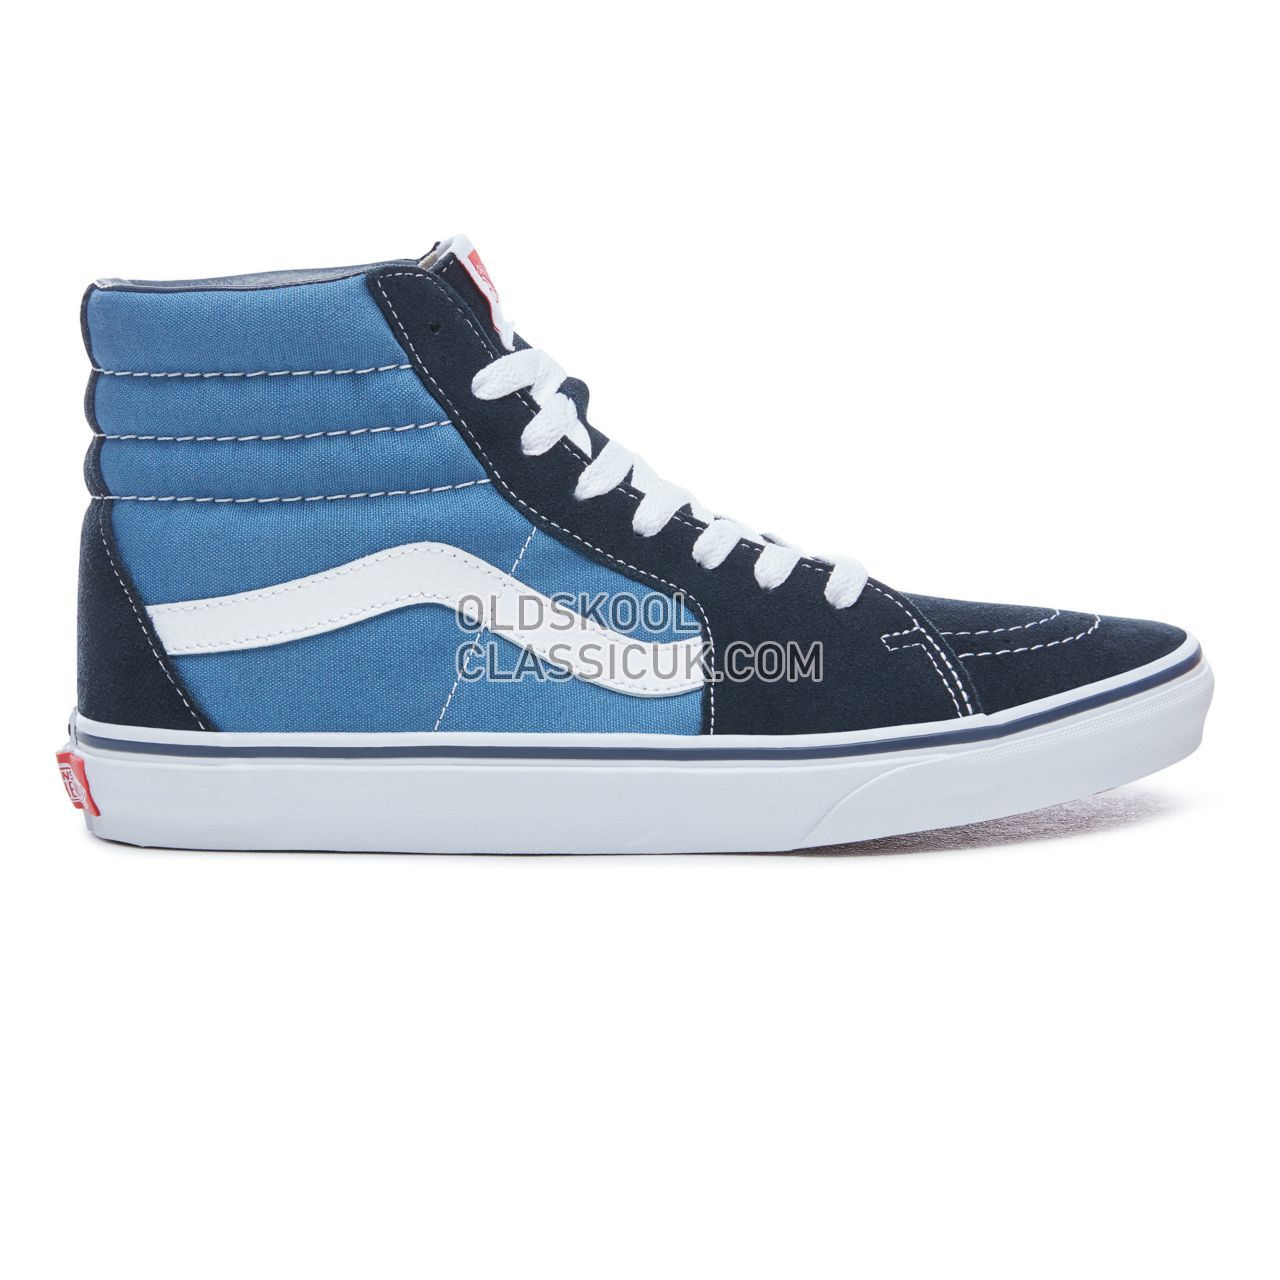 Vans Sk8-Hi Sneakers Mens Navy VN000D5INVY Shoes